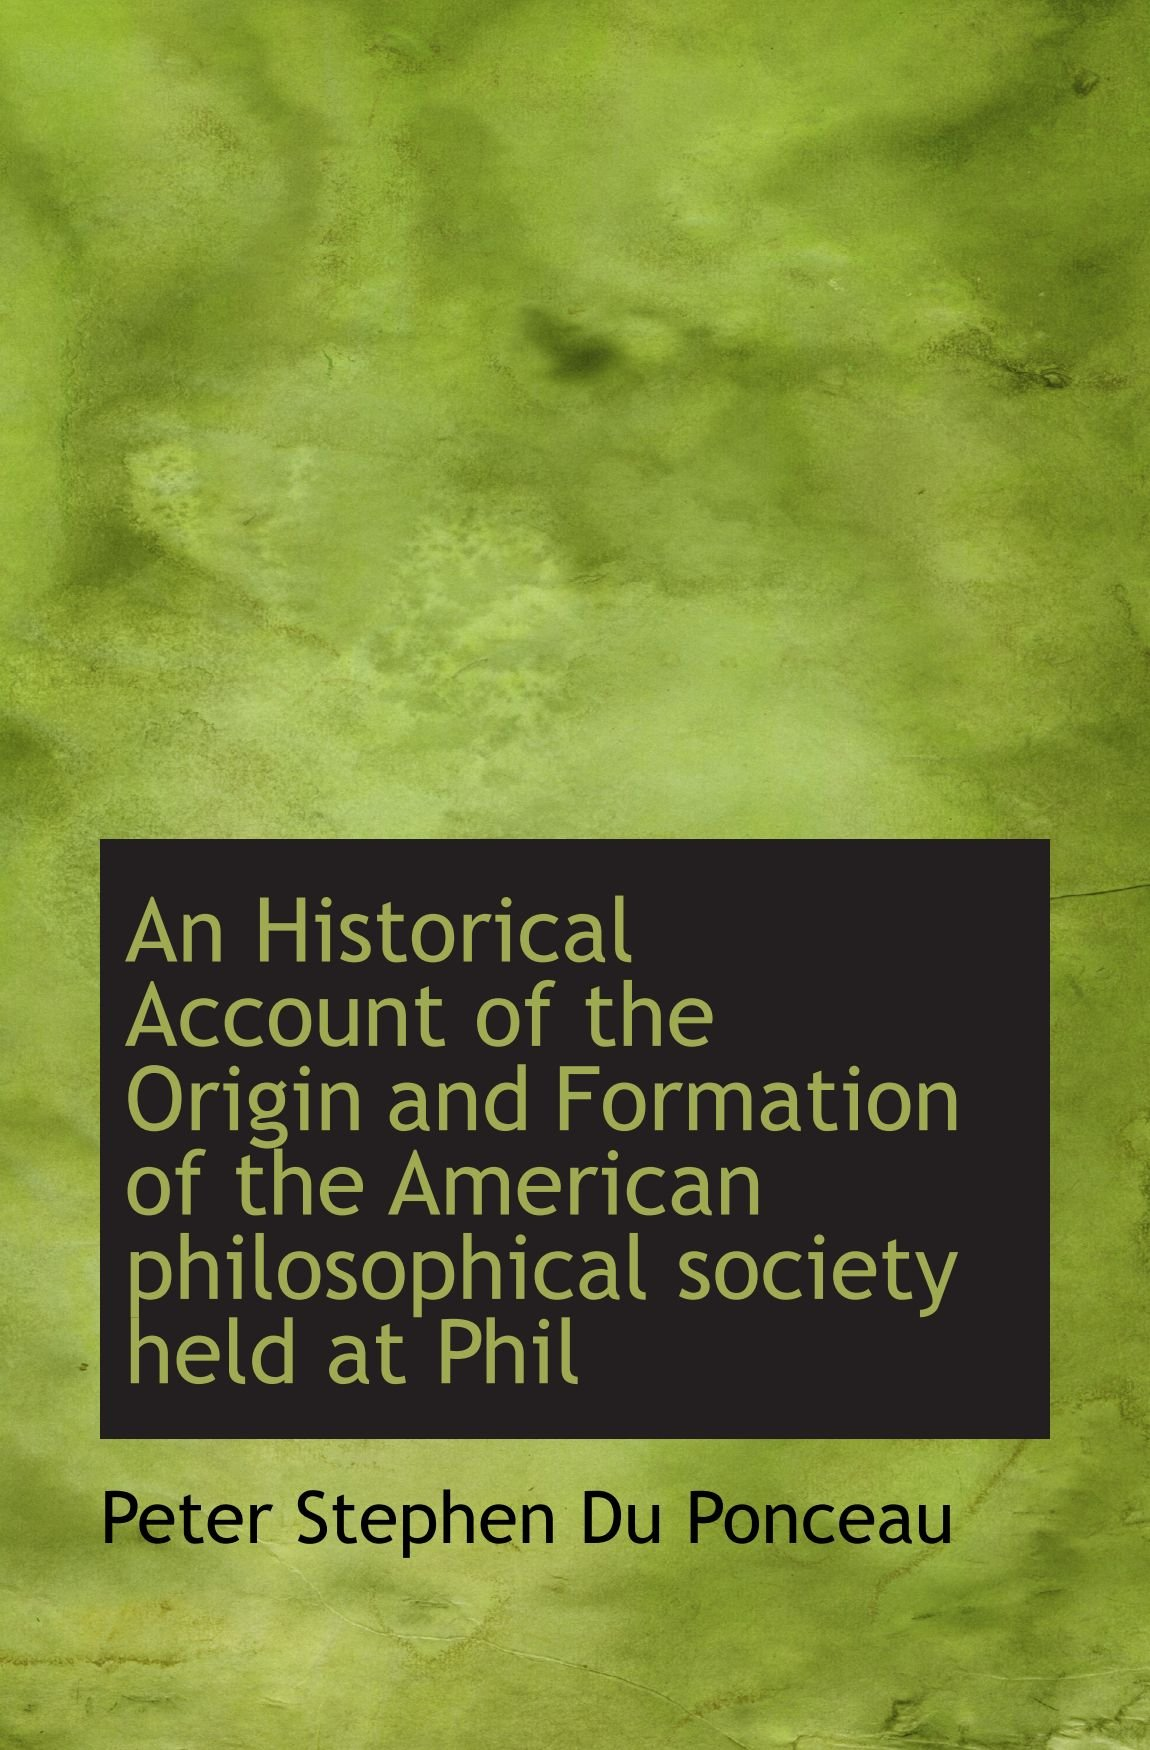 An Historical Account of the Origin and Formation of the American philosophical society held at Phil pdf